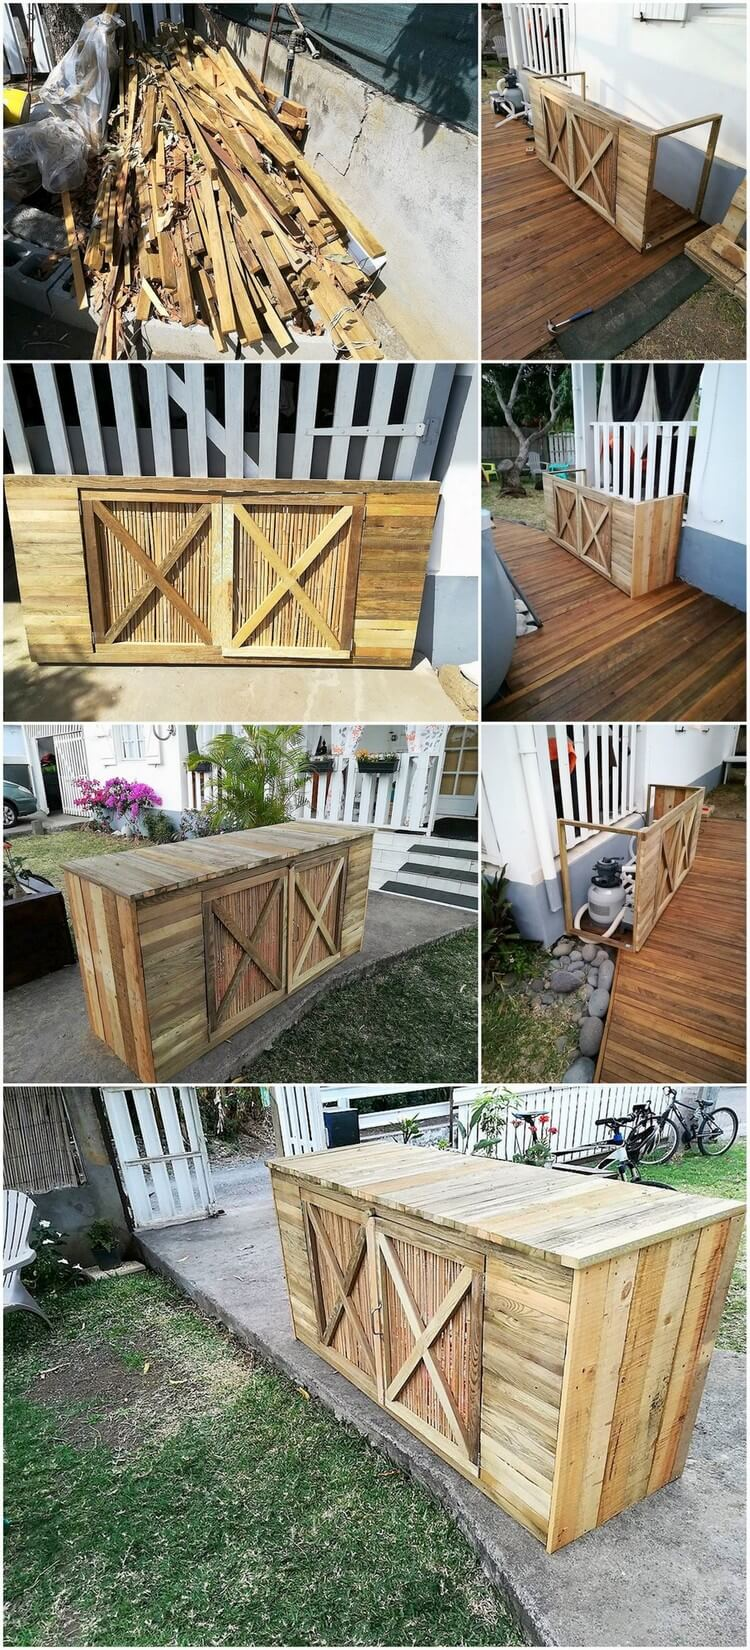 Recycled Wood Pallets Furniture to Hide Pool Pump